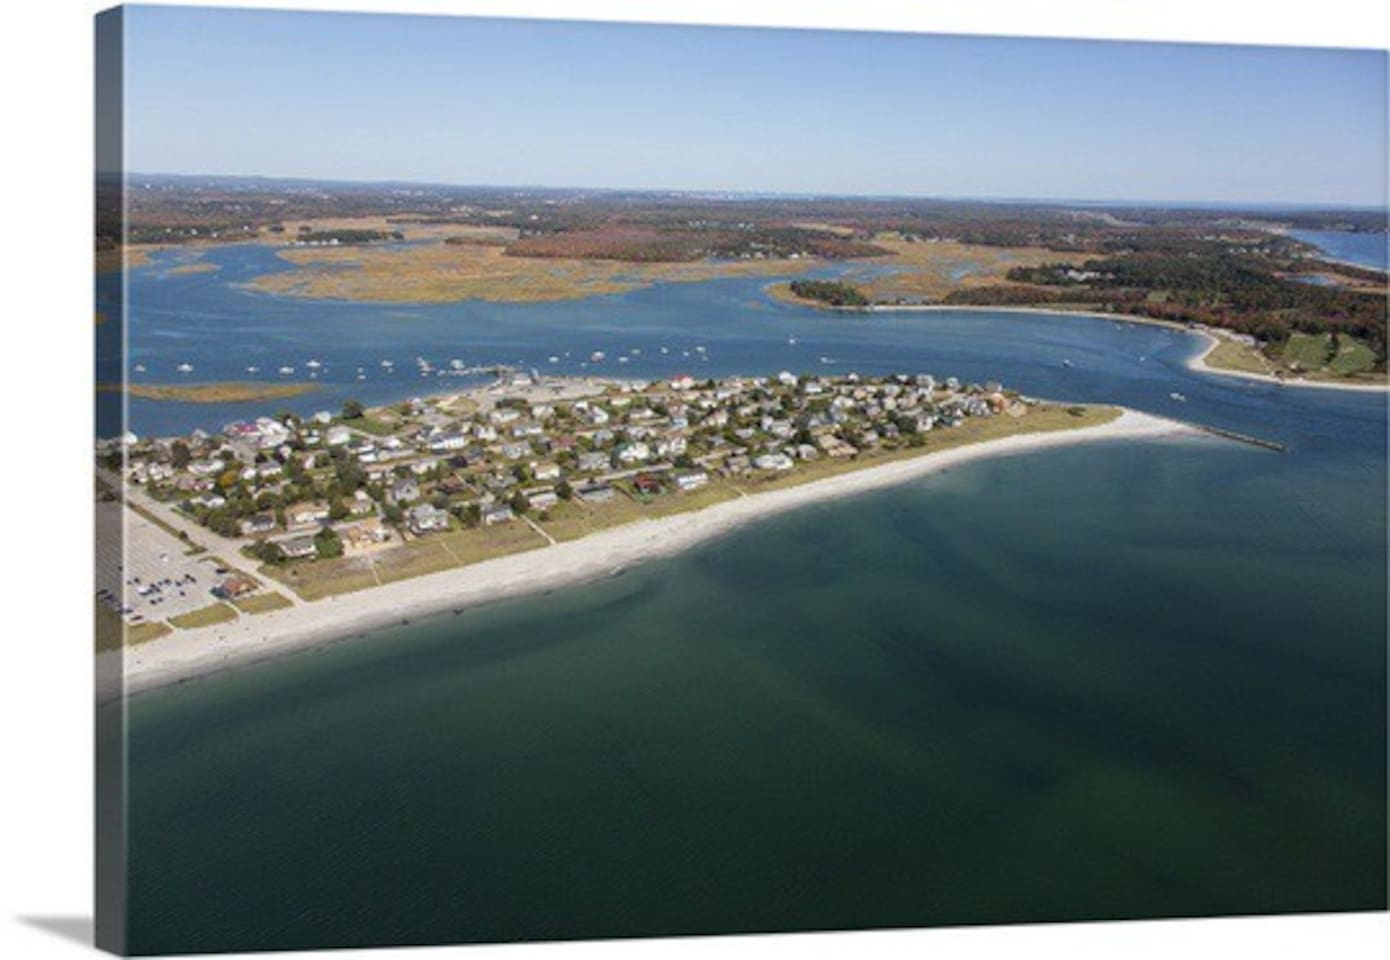 Aerial view of Grand beach, Pine Point.  It is a 2.5 mile round trip walk on the beach to the Jetty on the Point from the cottage.